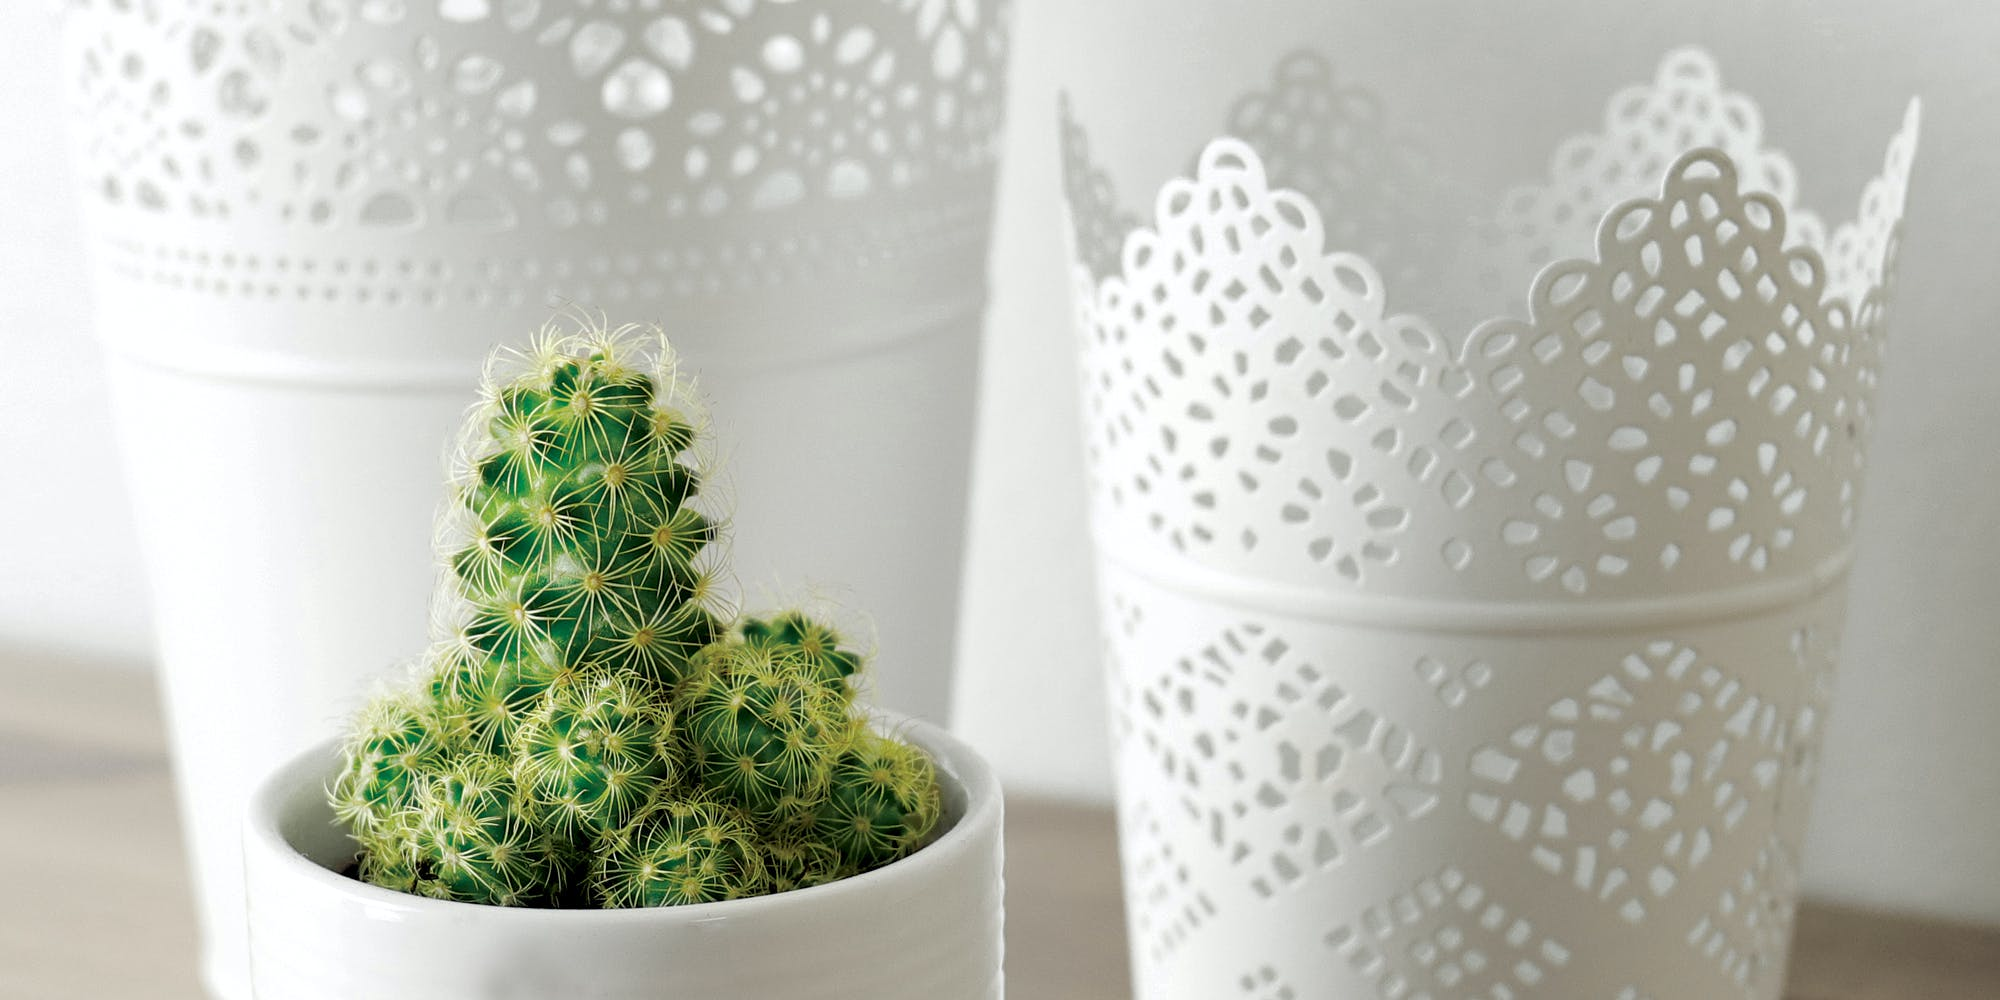 Free stock photo of plant, flowerpot, green, cactus